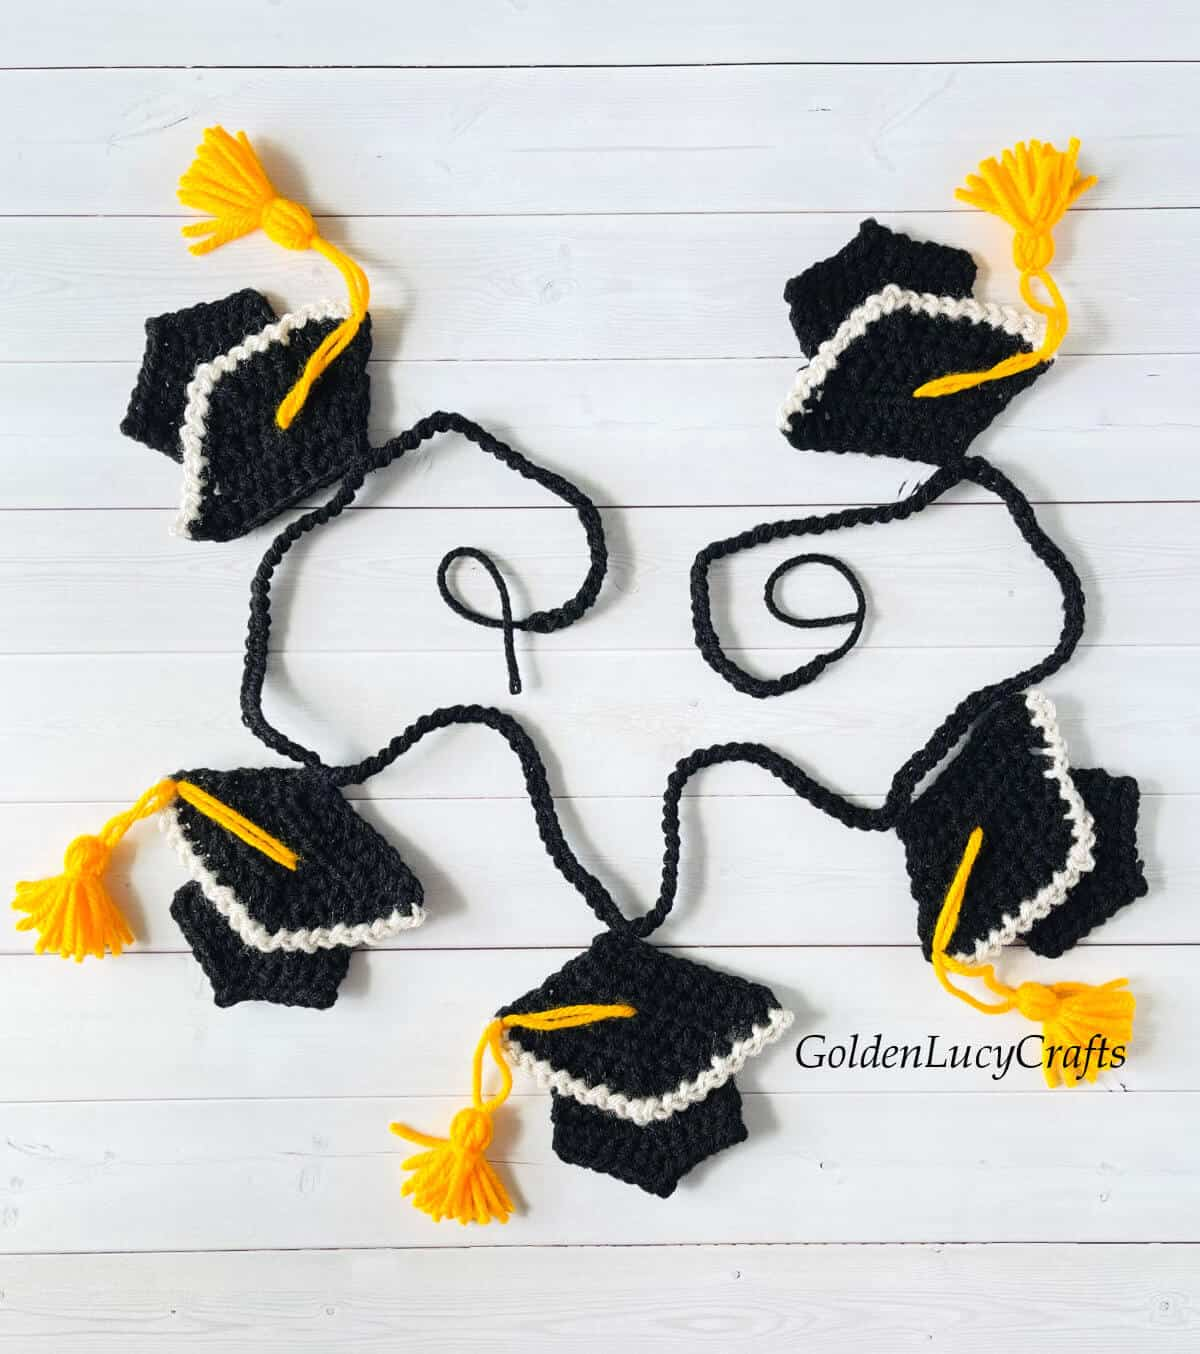 Crocheted graduation garland laying on the surface.